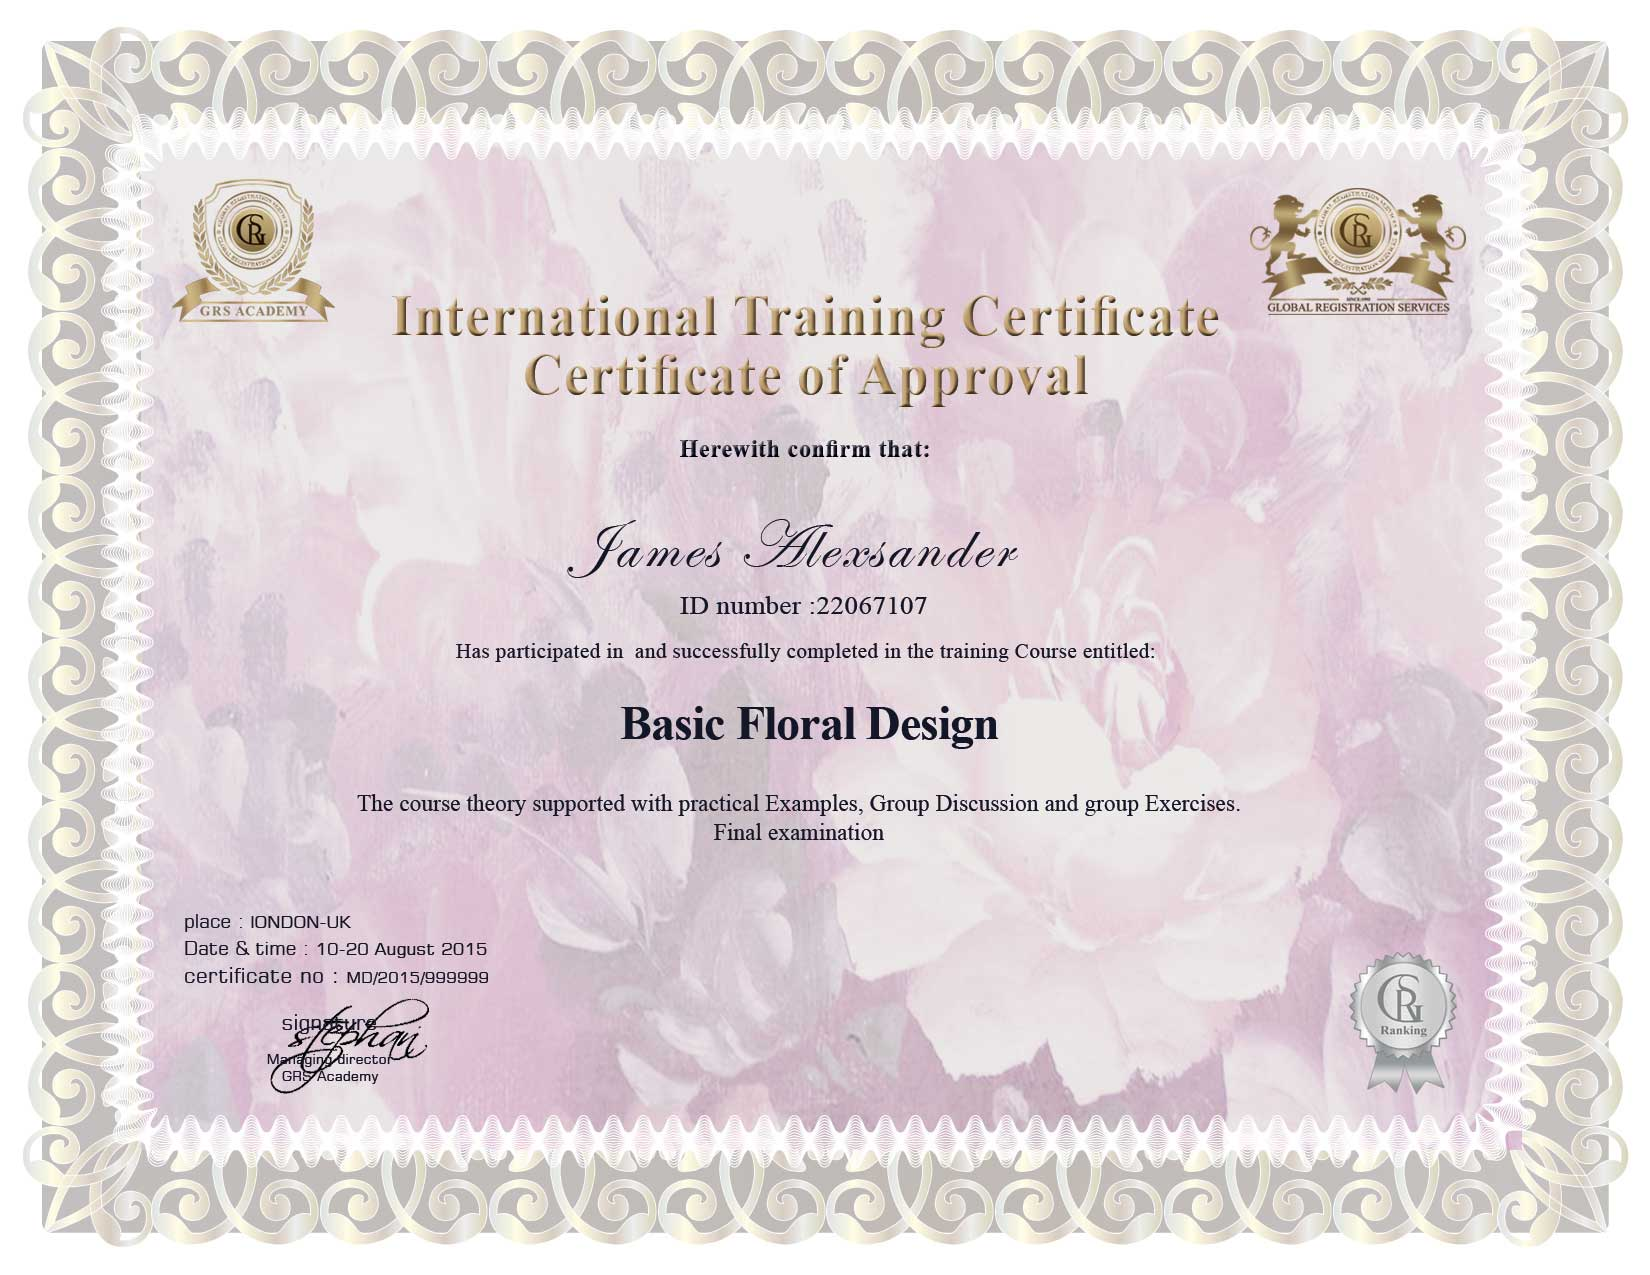 training certificate global registration services